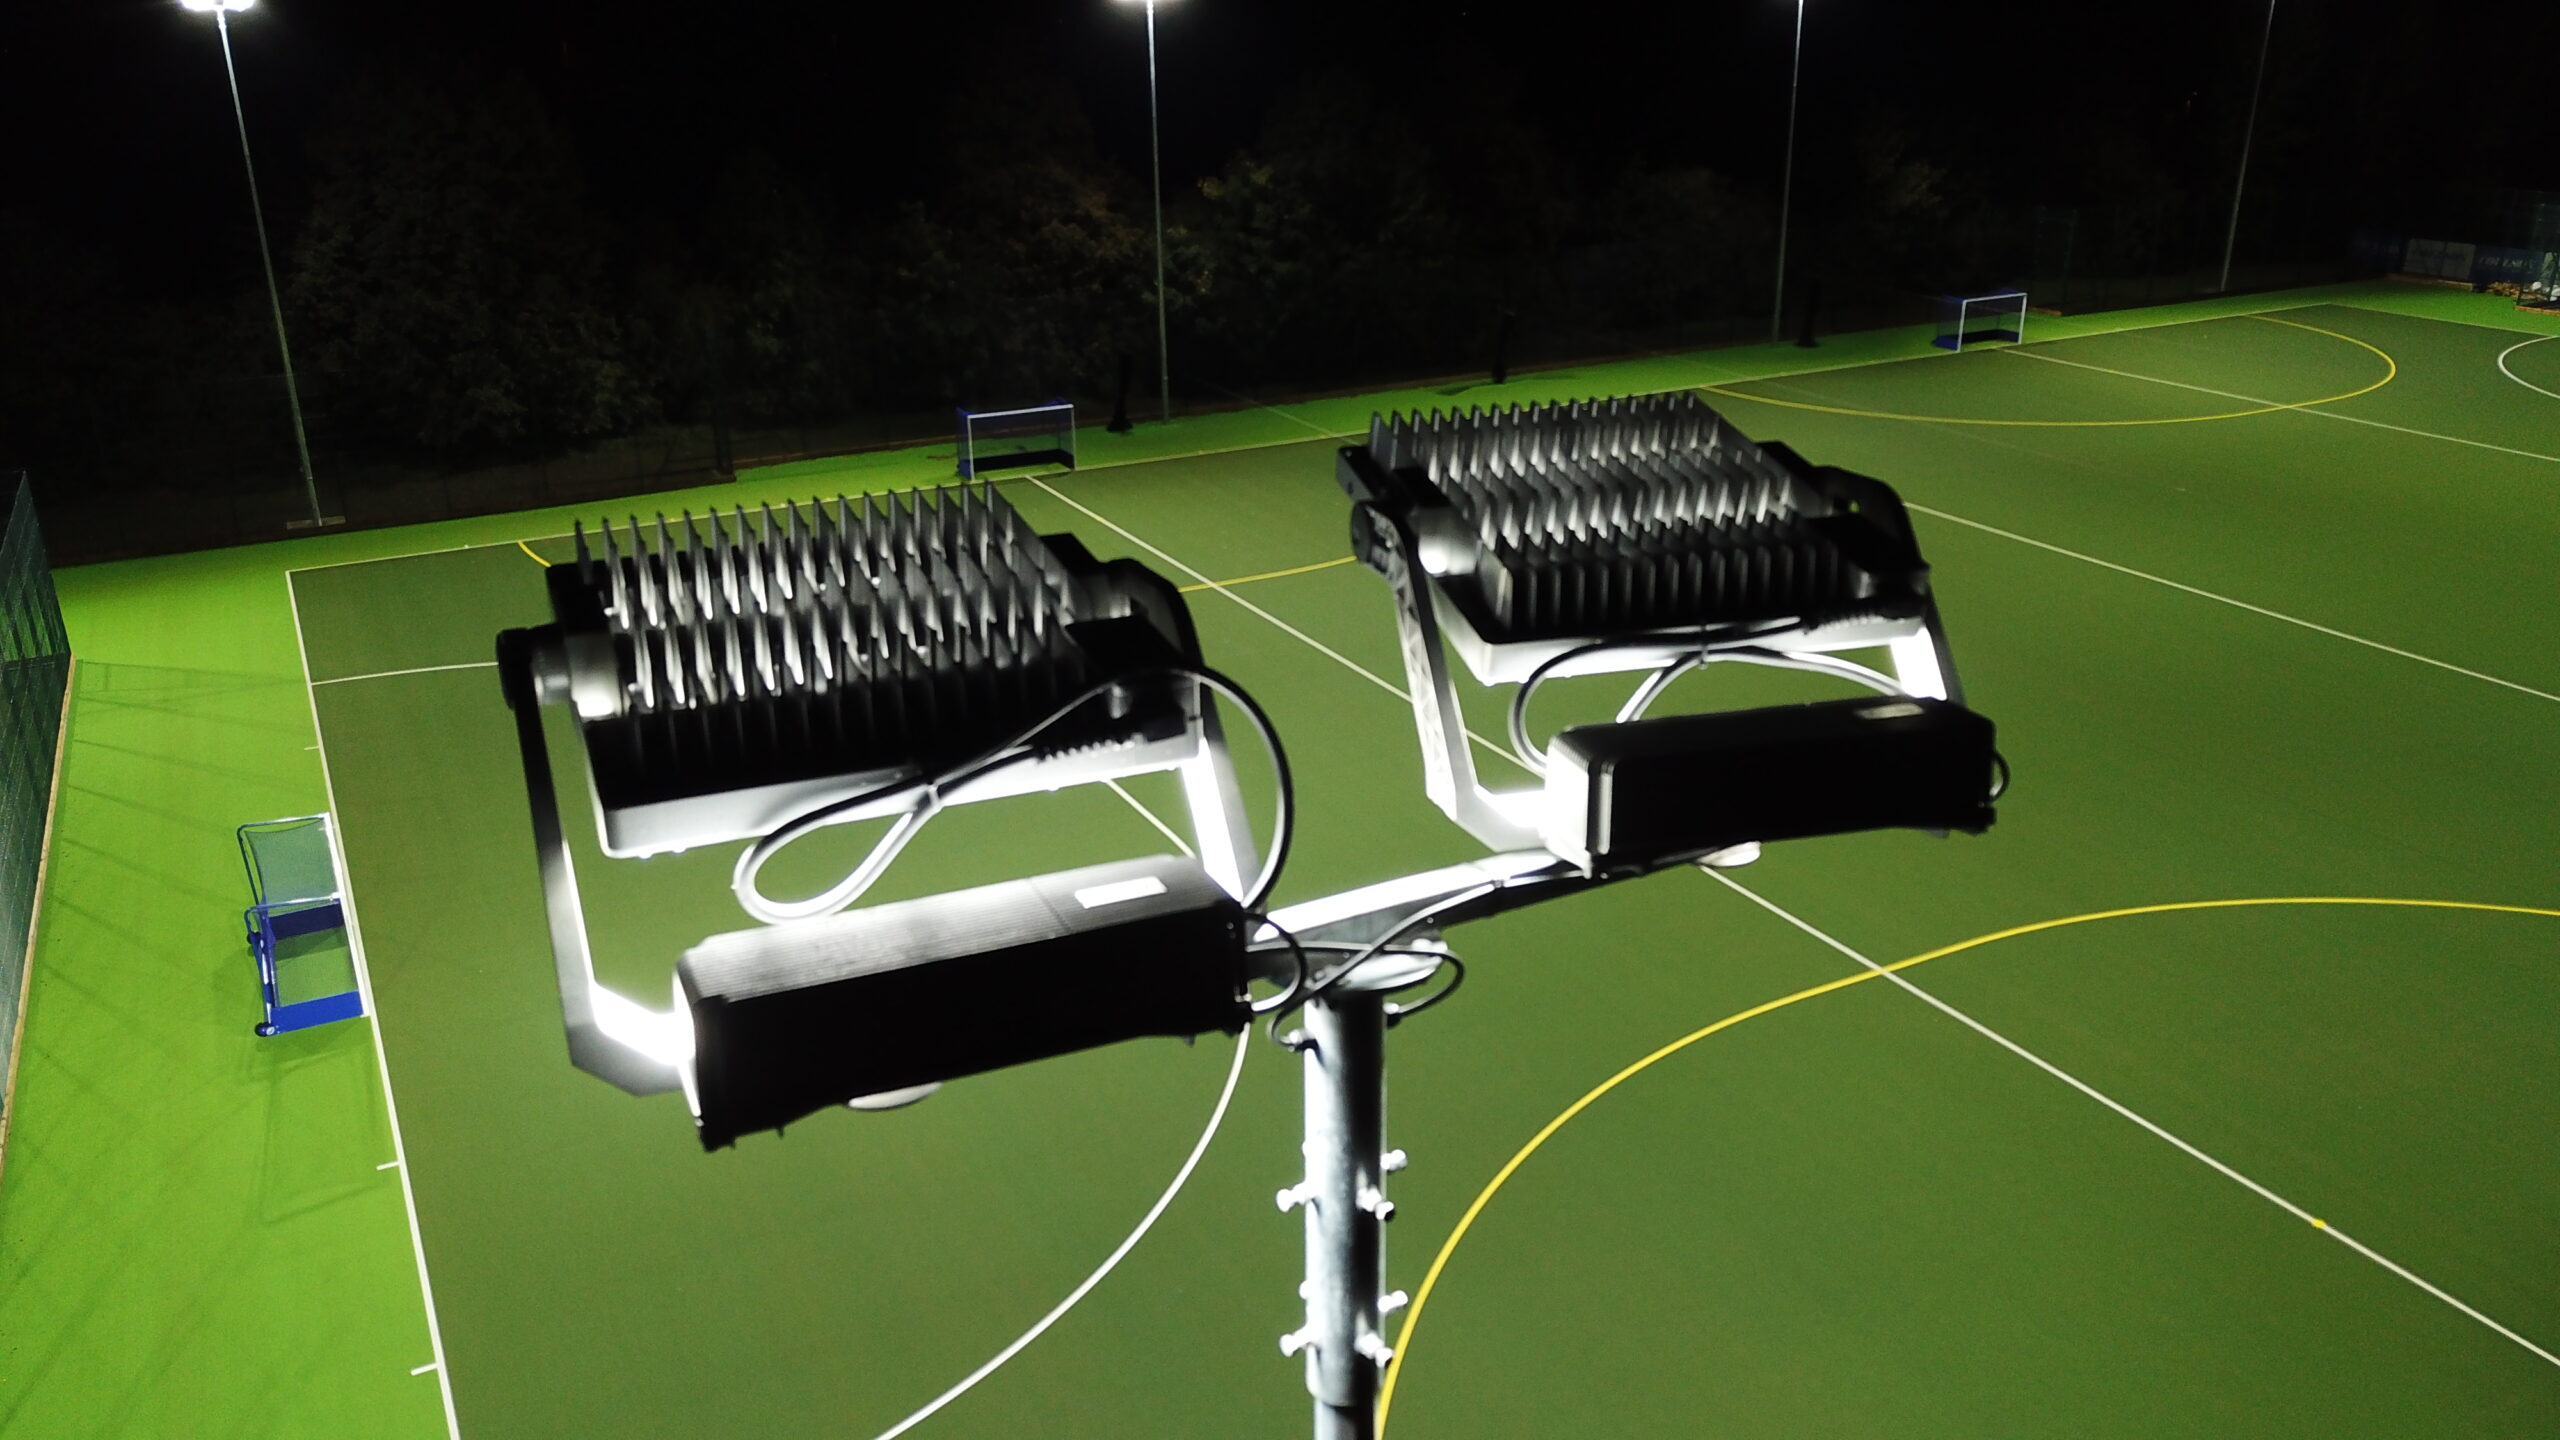 st marys school led floodlights installed by halliday lighting